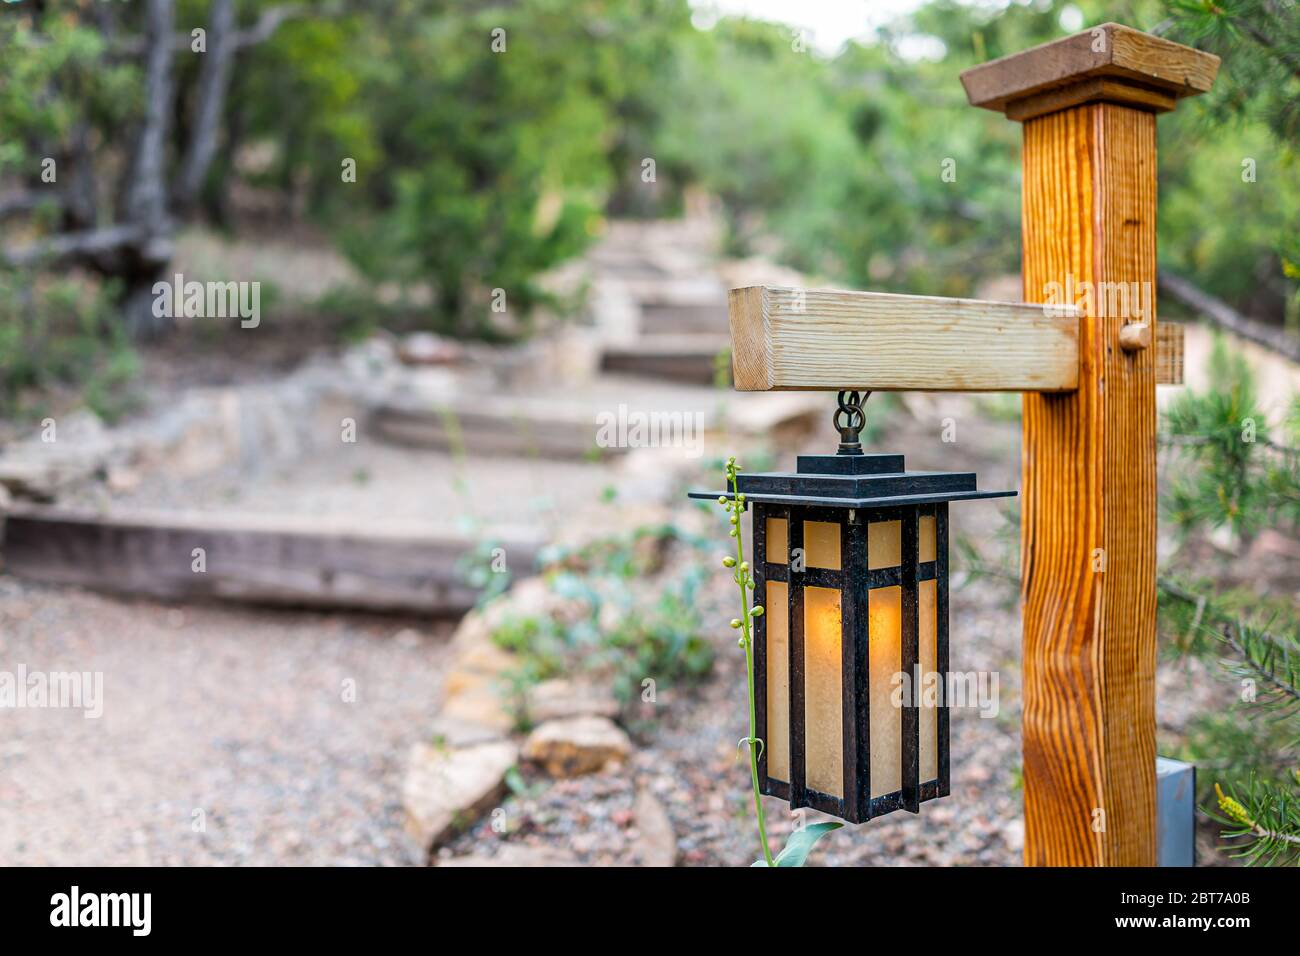 Japan In Evening With Illuminated Hanging Lantern Lamp Light On Wooden Pole Post In Japanese Garden With Steps Stairs And Green Trees Foliage In Blurr Stock Photo Alamy